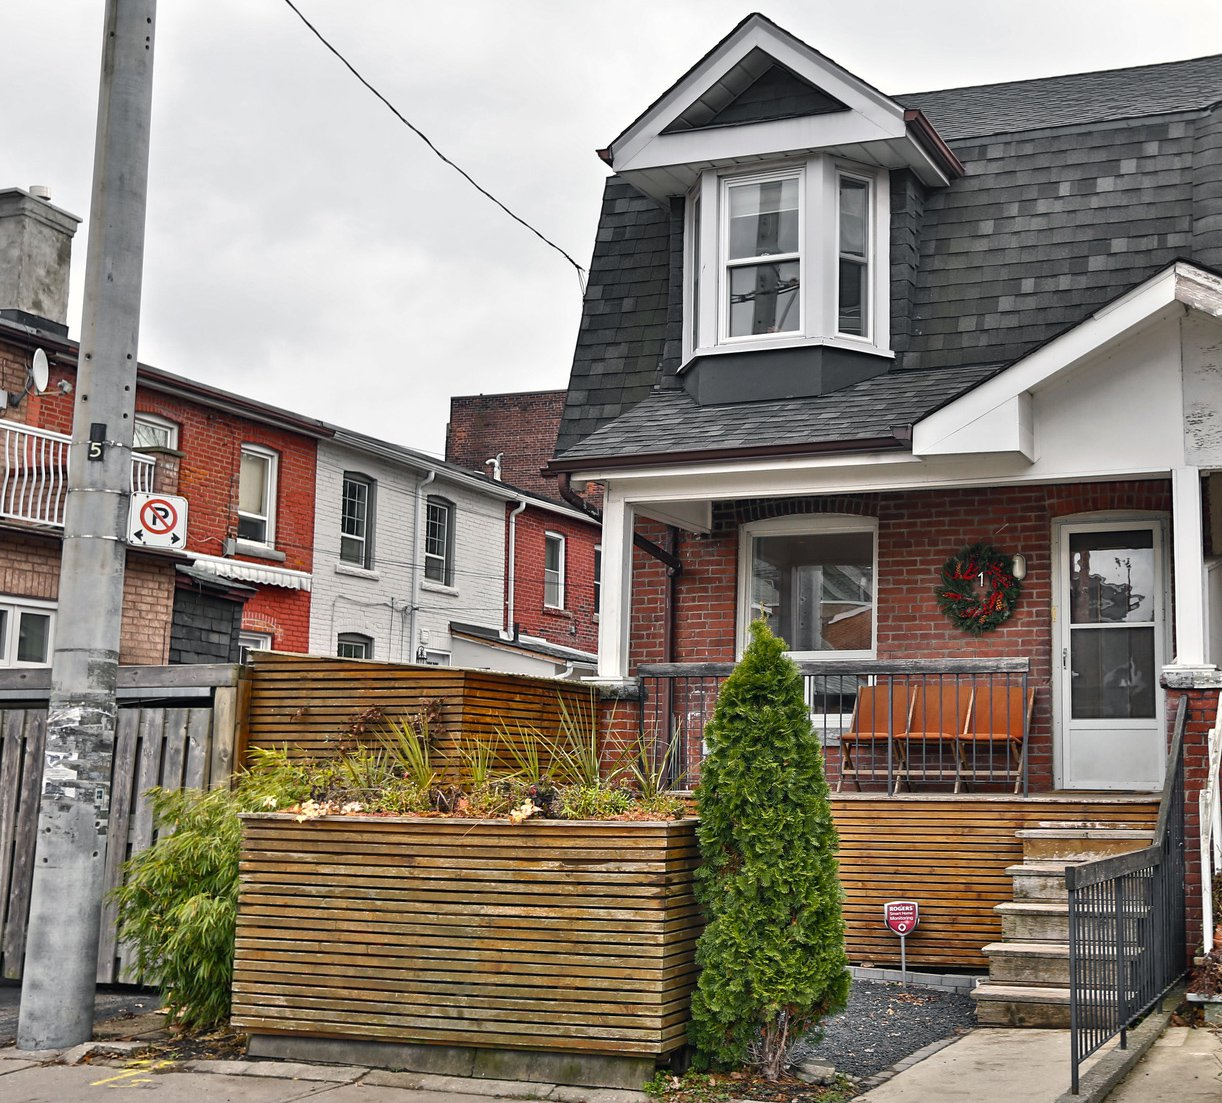 Main Photo: 1 Delaney Crescent in Toronto: Little Portugal House (2-Storey) for sale (Toronto C01)  : MLS®# C4312755